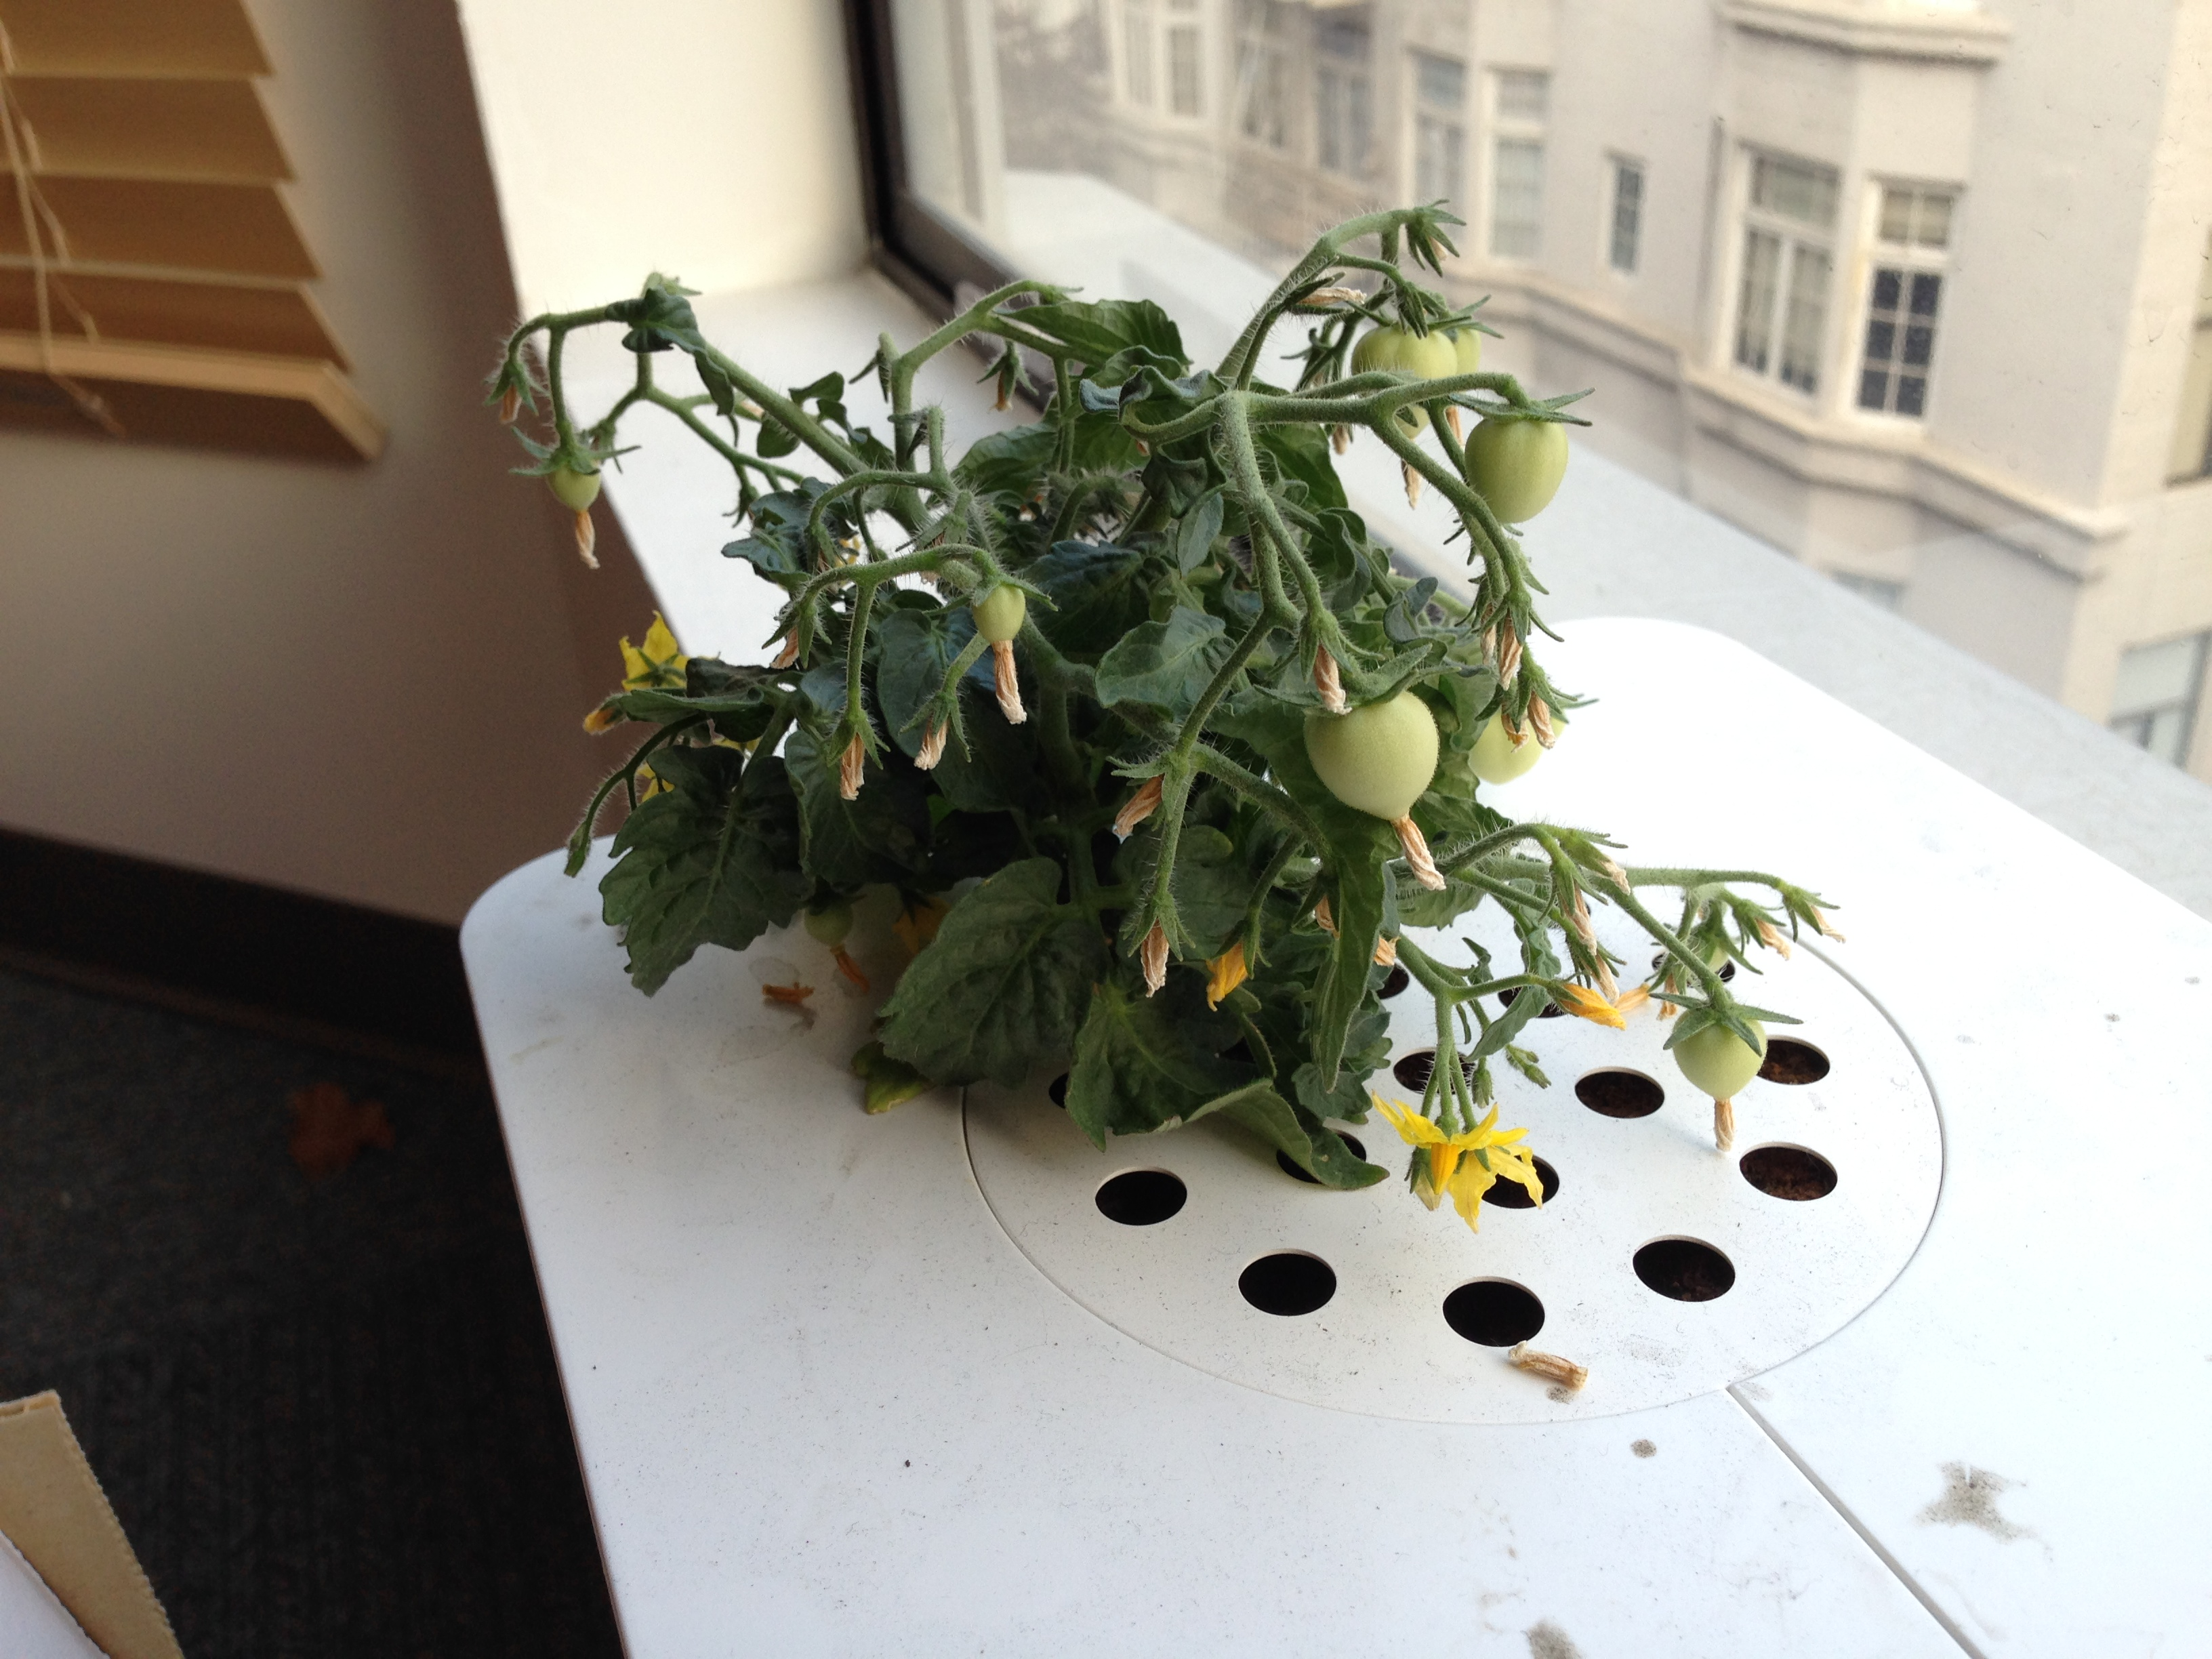 This is Nate Cardozo's Click and Grow Flower Smartpot as of November 11, 2013.